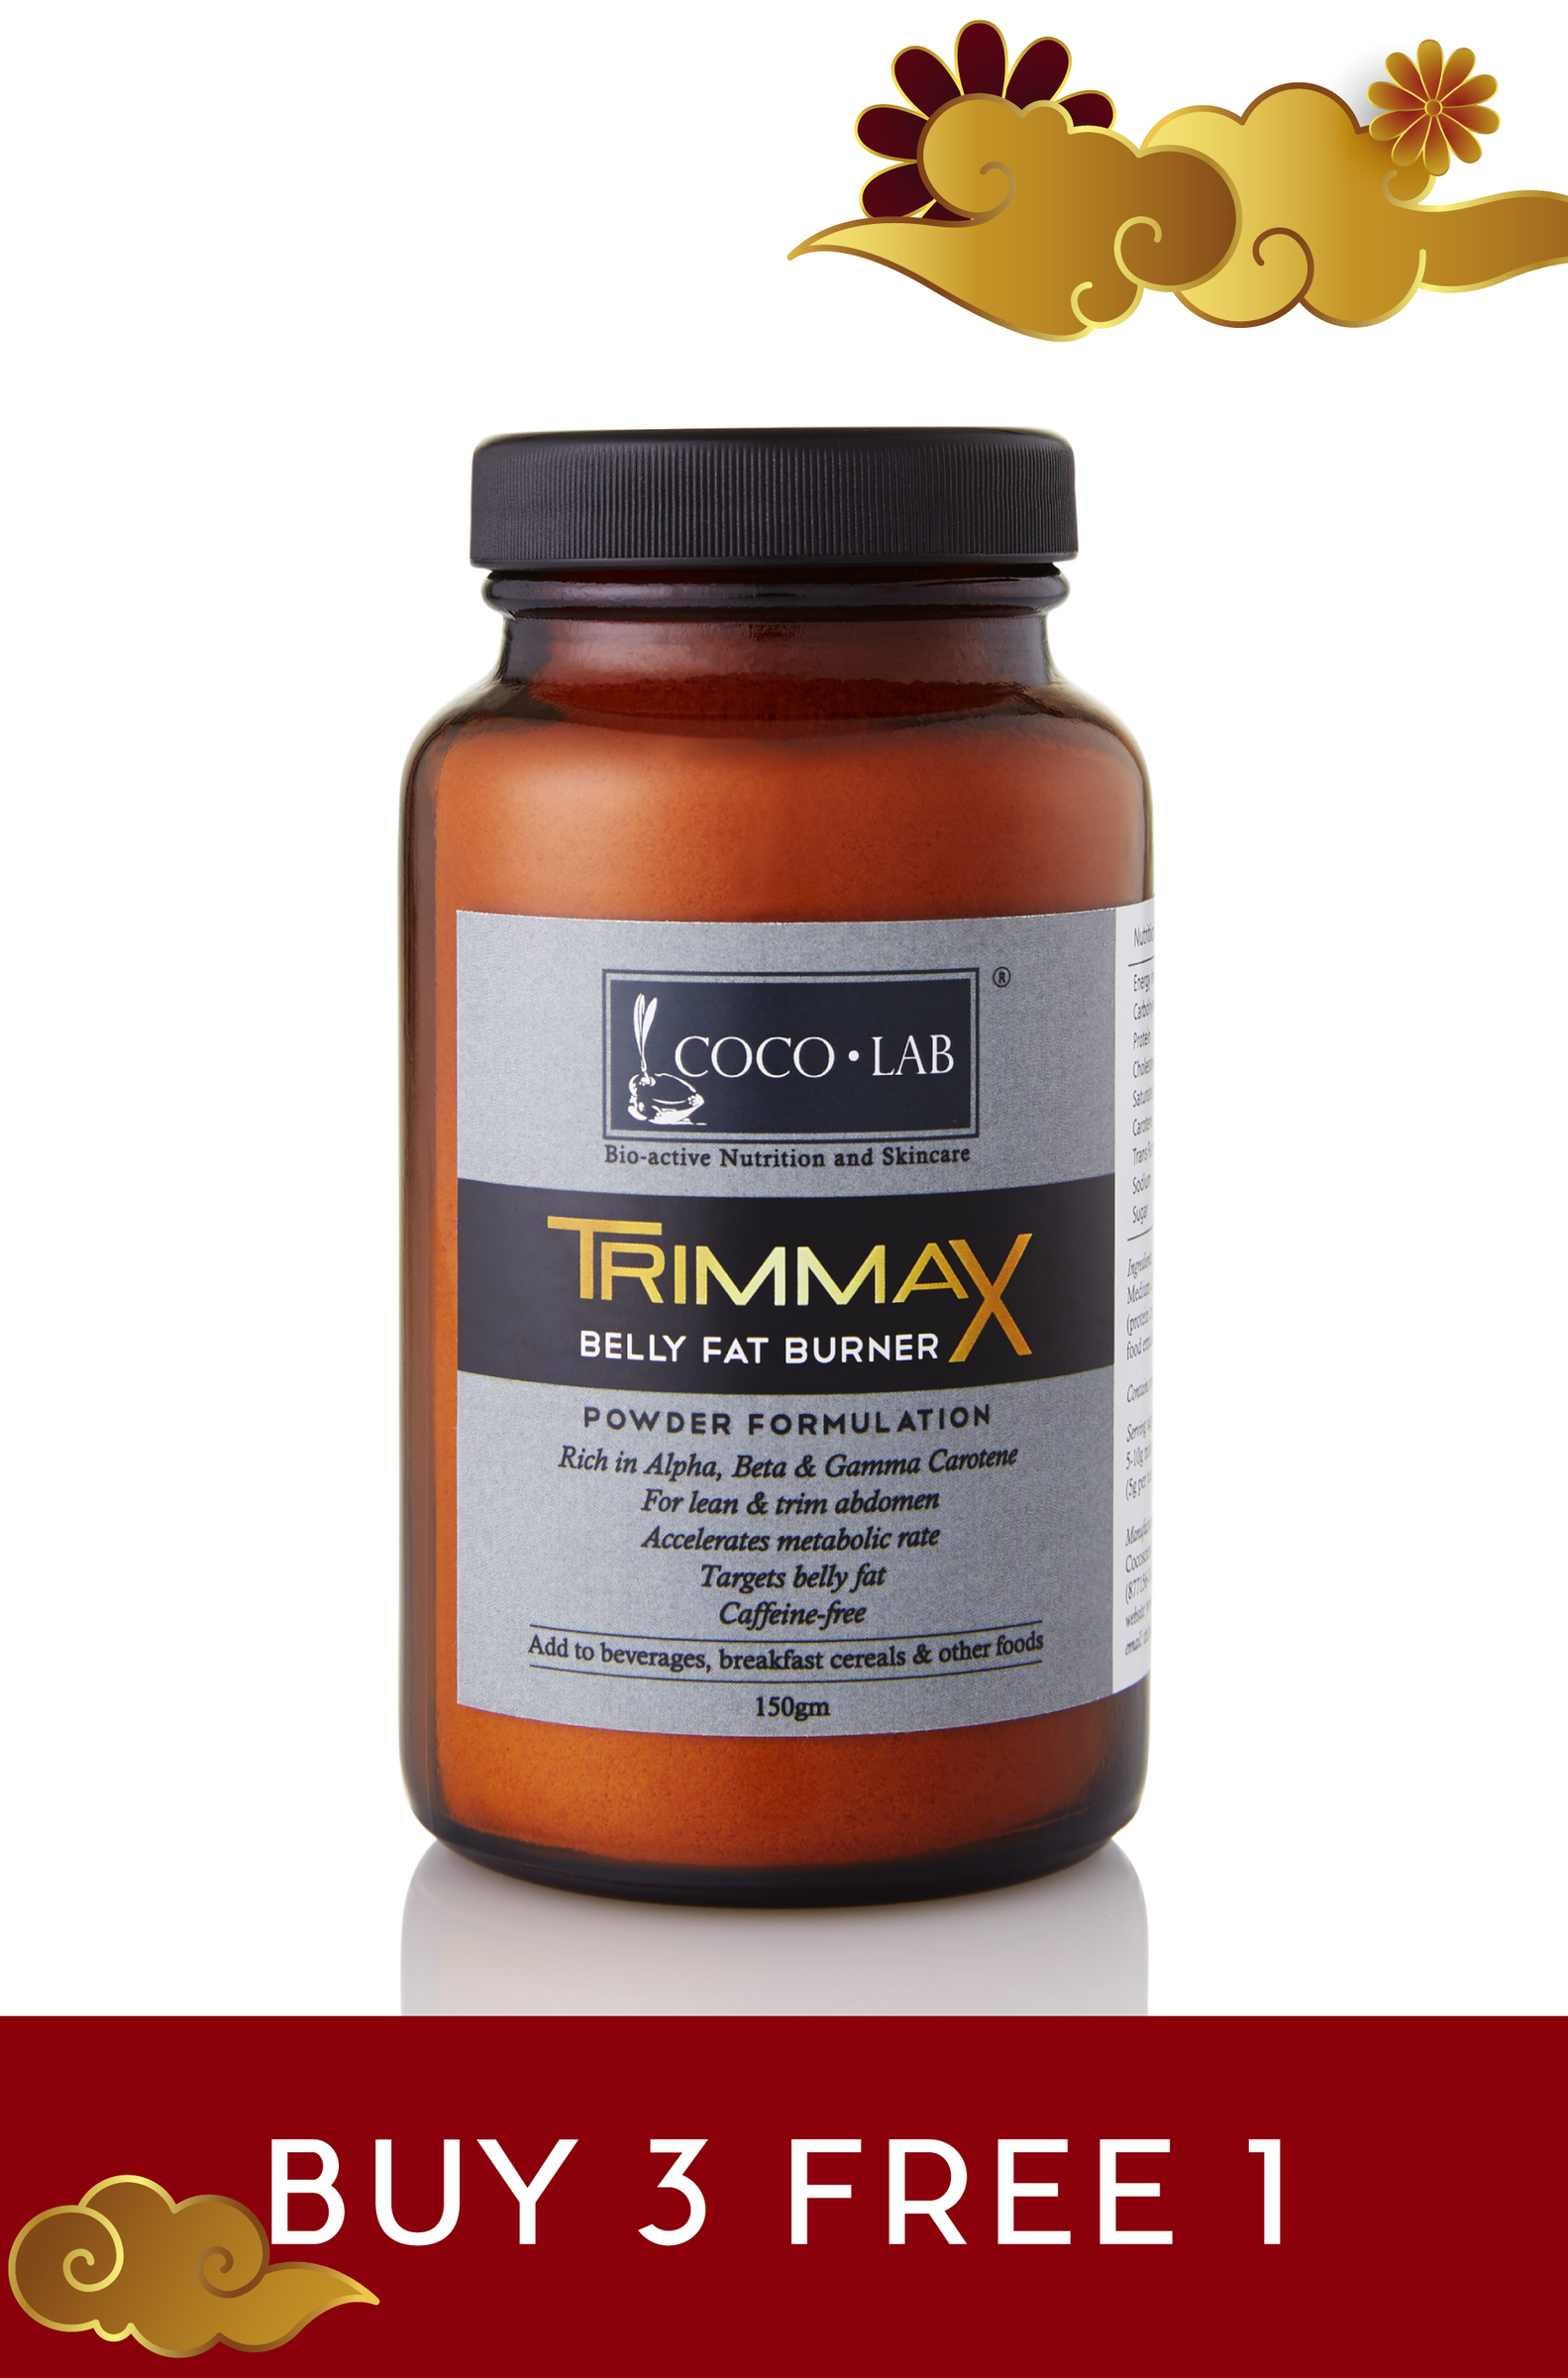 TRIMMAX POWDER - BUY 3 FREE 1 (PRODUCT PLACEMENT).jpg